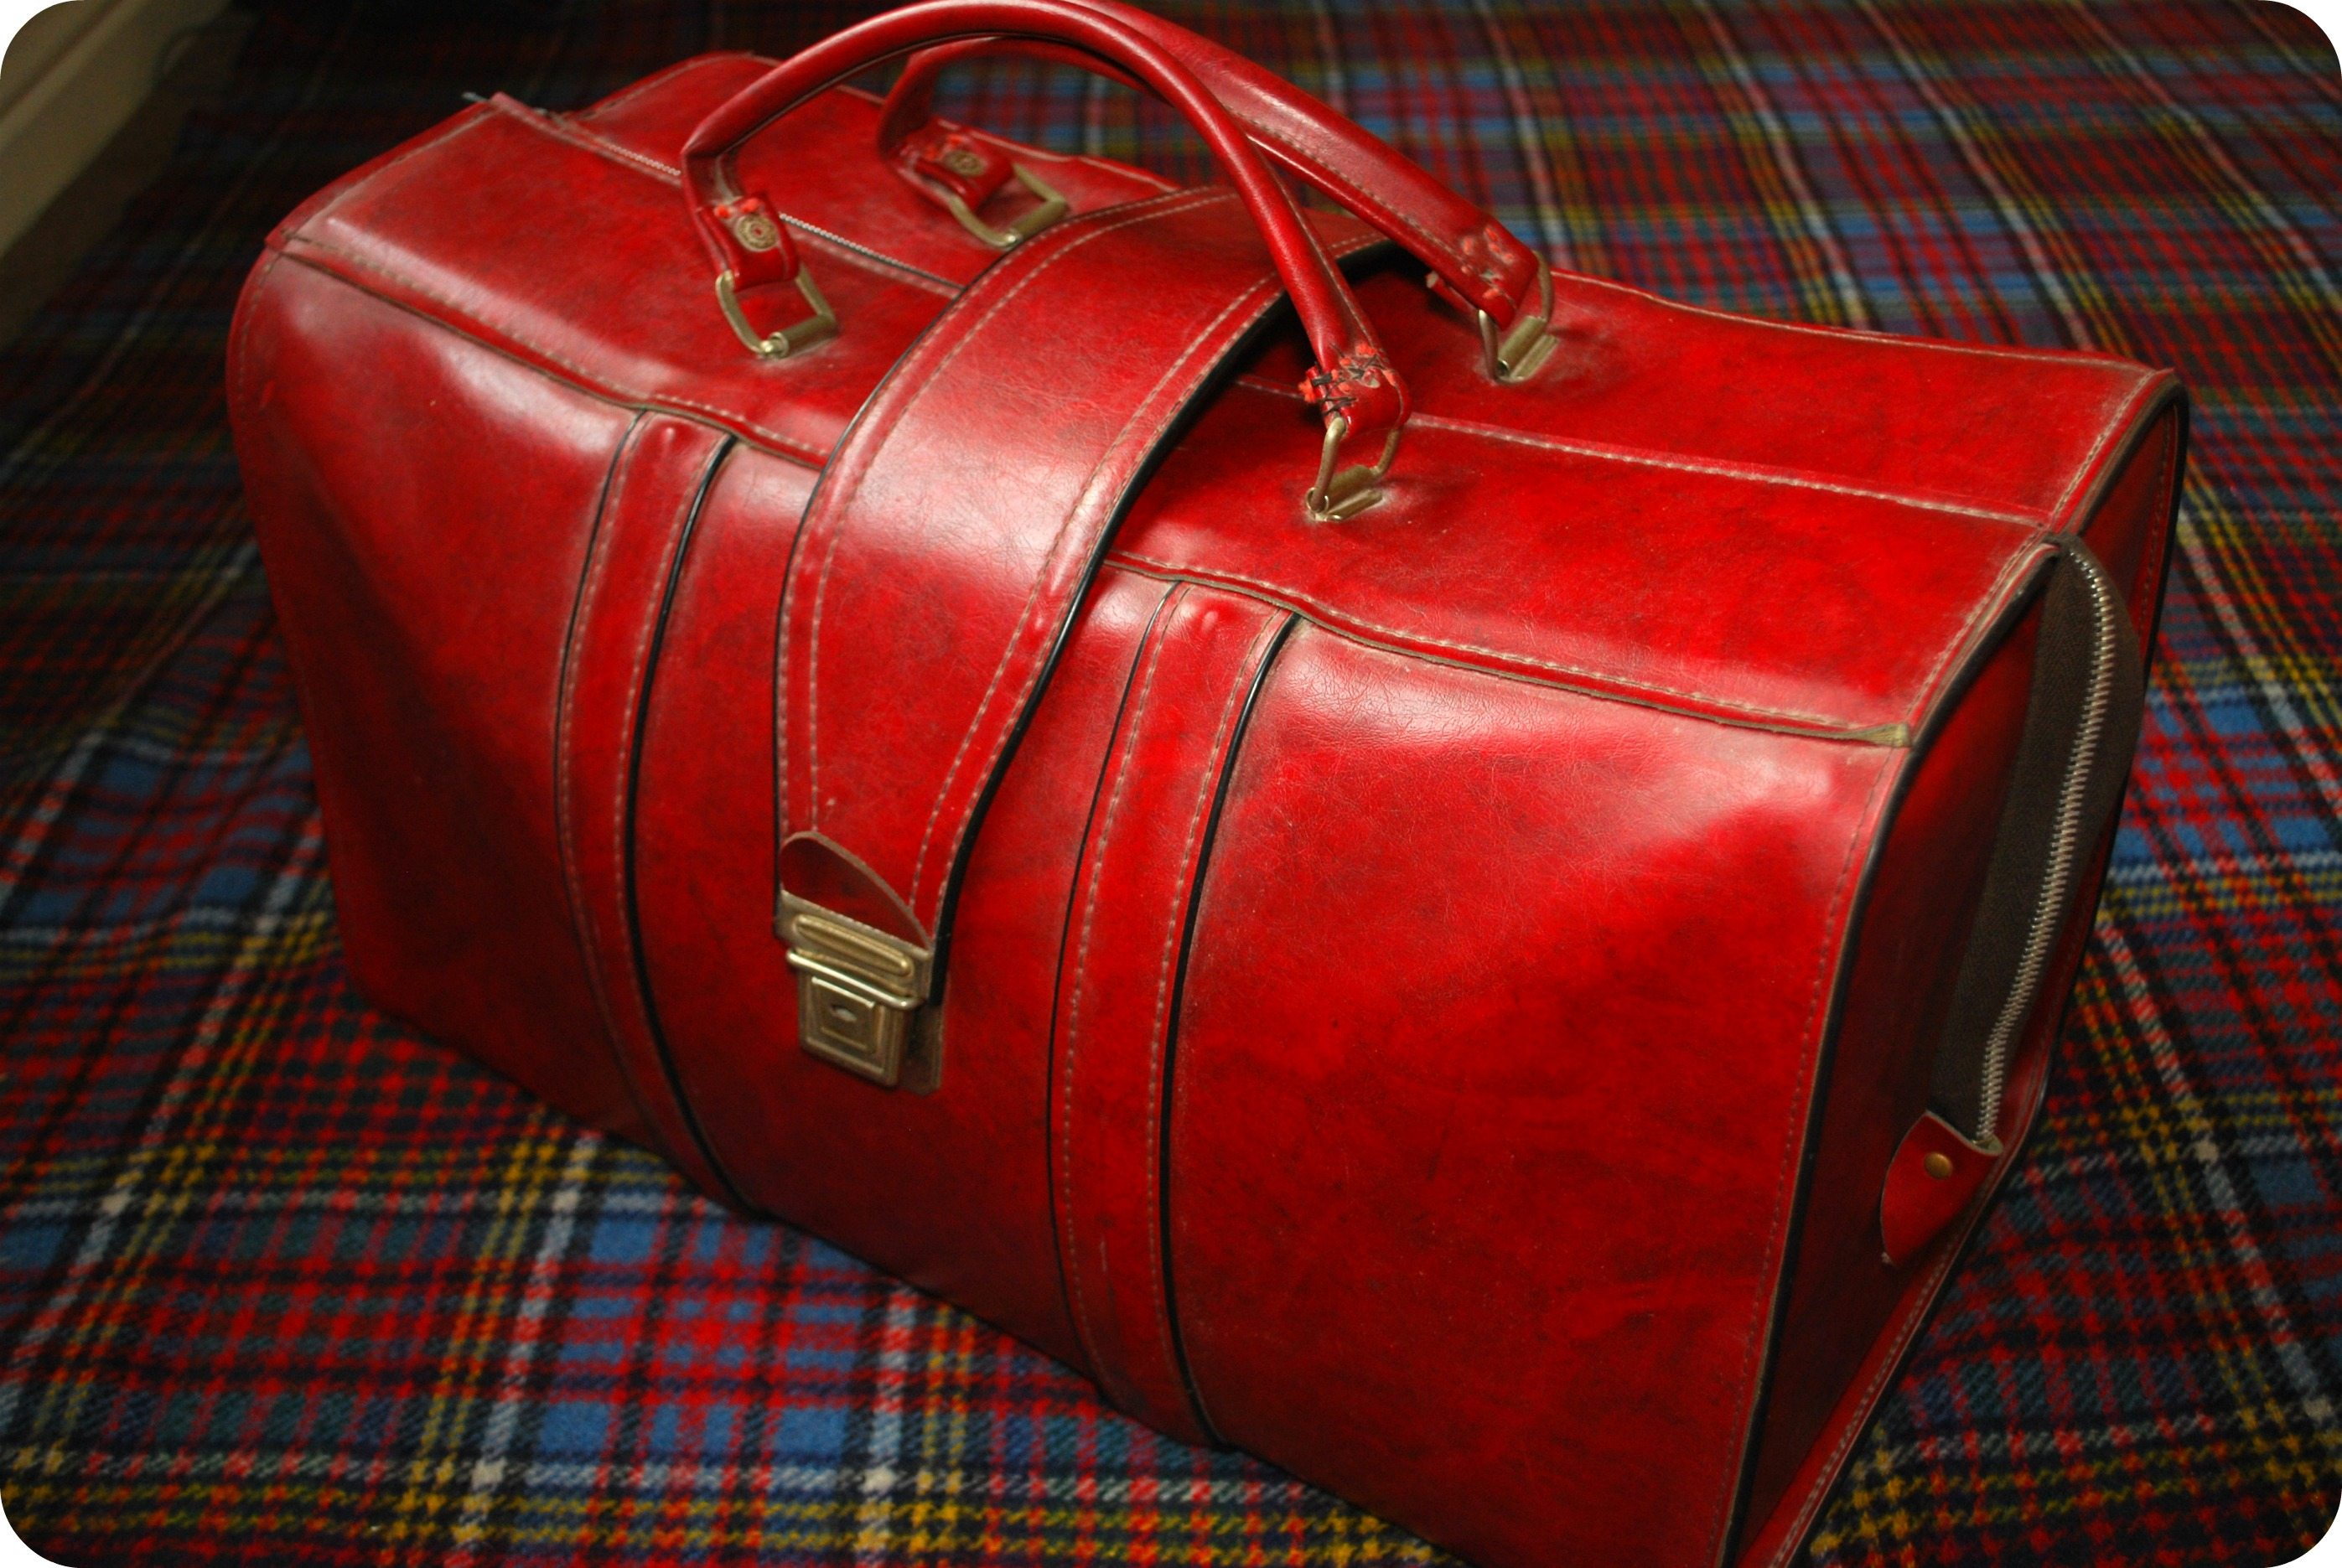 vintage red travel bag